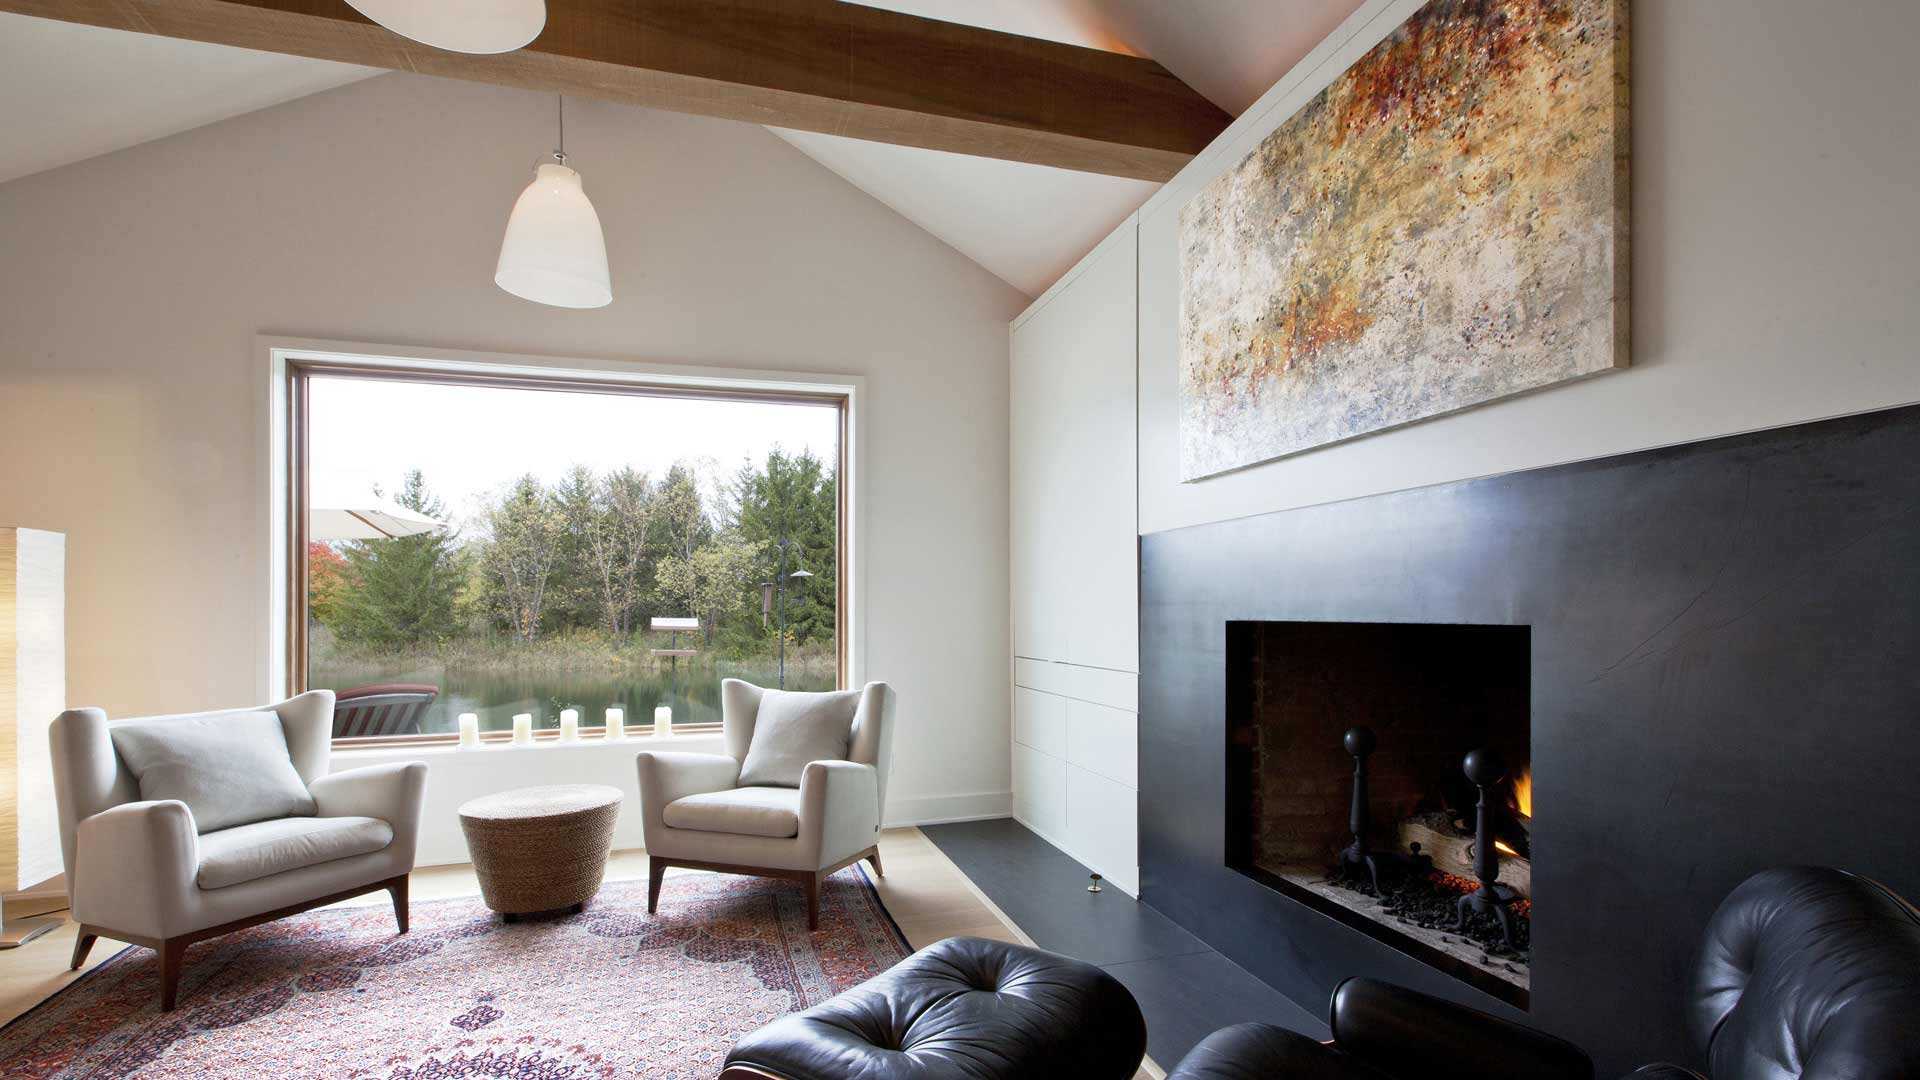 Scandinavian Rustic Cabin - Sitting Room - Christopher Short, Architect, Indianapolis, HAUS Architecture